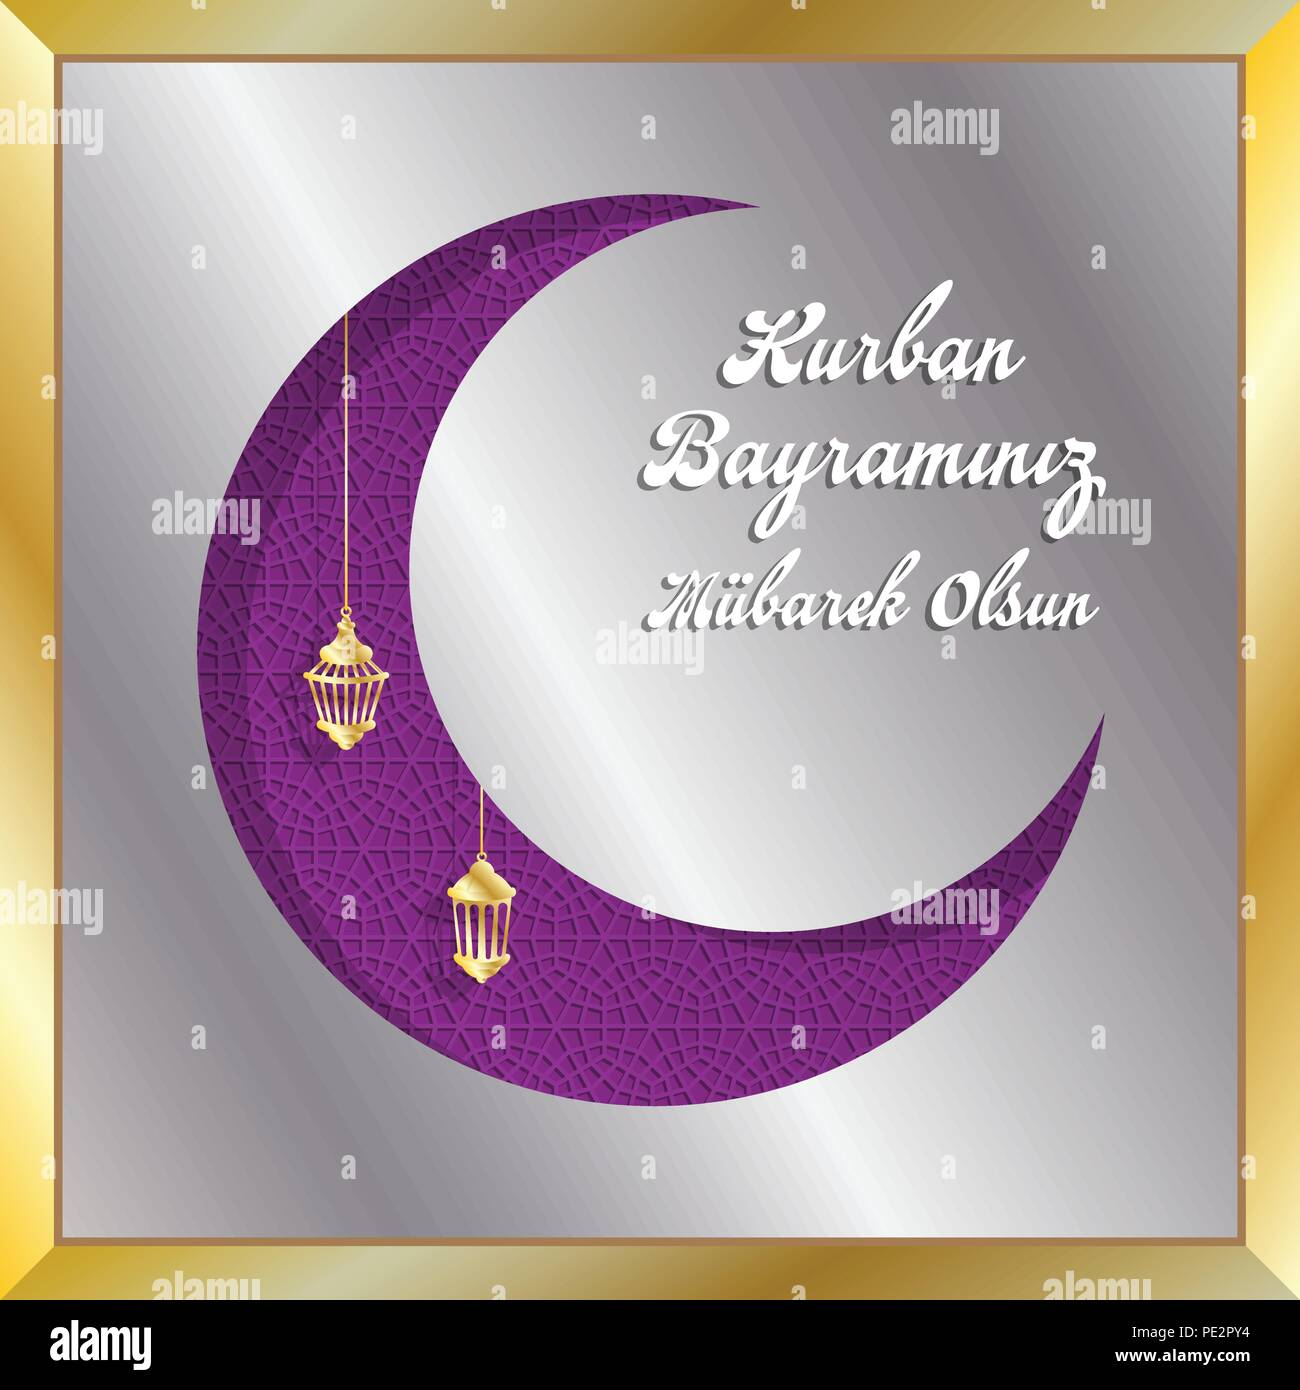 Turkish eid mubarak greeting with crescent moon for muslim holiday turkish eid mubarak greeting with crescent moon for muslim holiday all the objects are in different layers and the text types do not need any font m4hsunfo